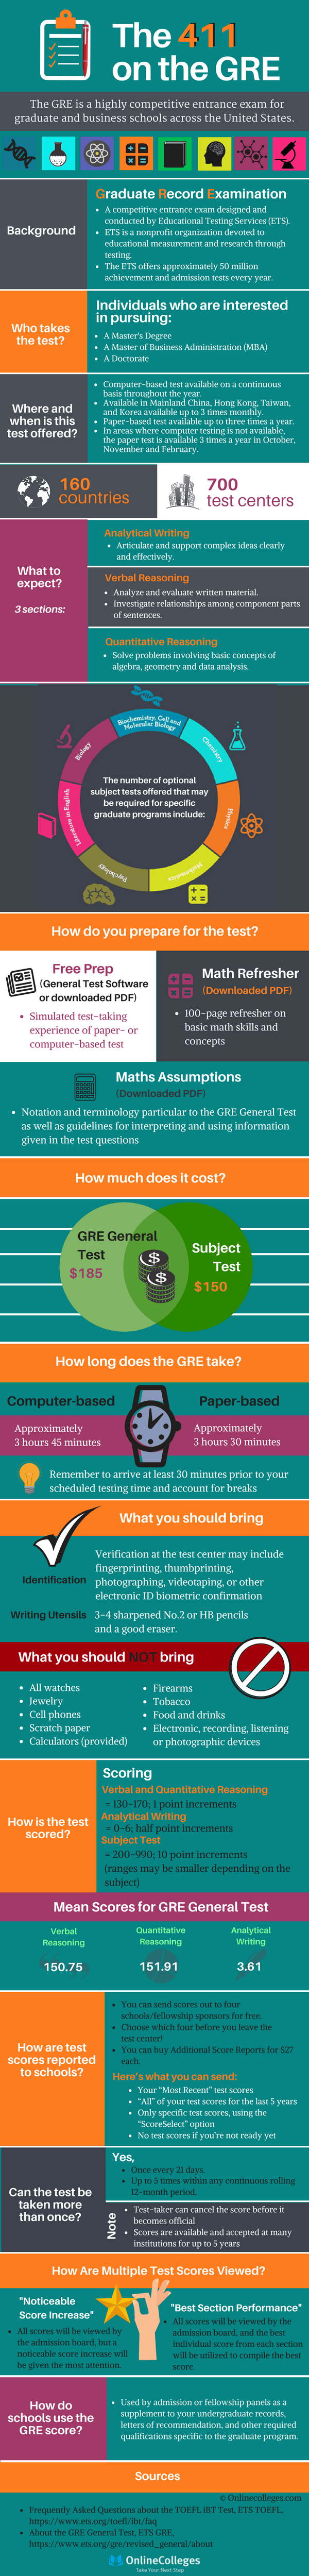 Ultimate-Guide-to-the-GRE-infographic